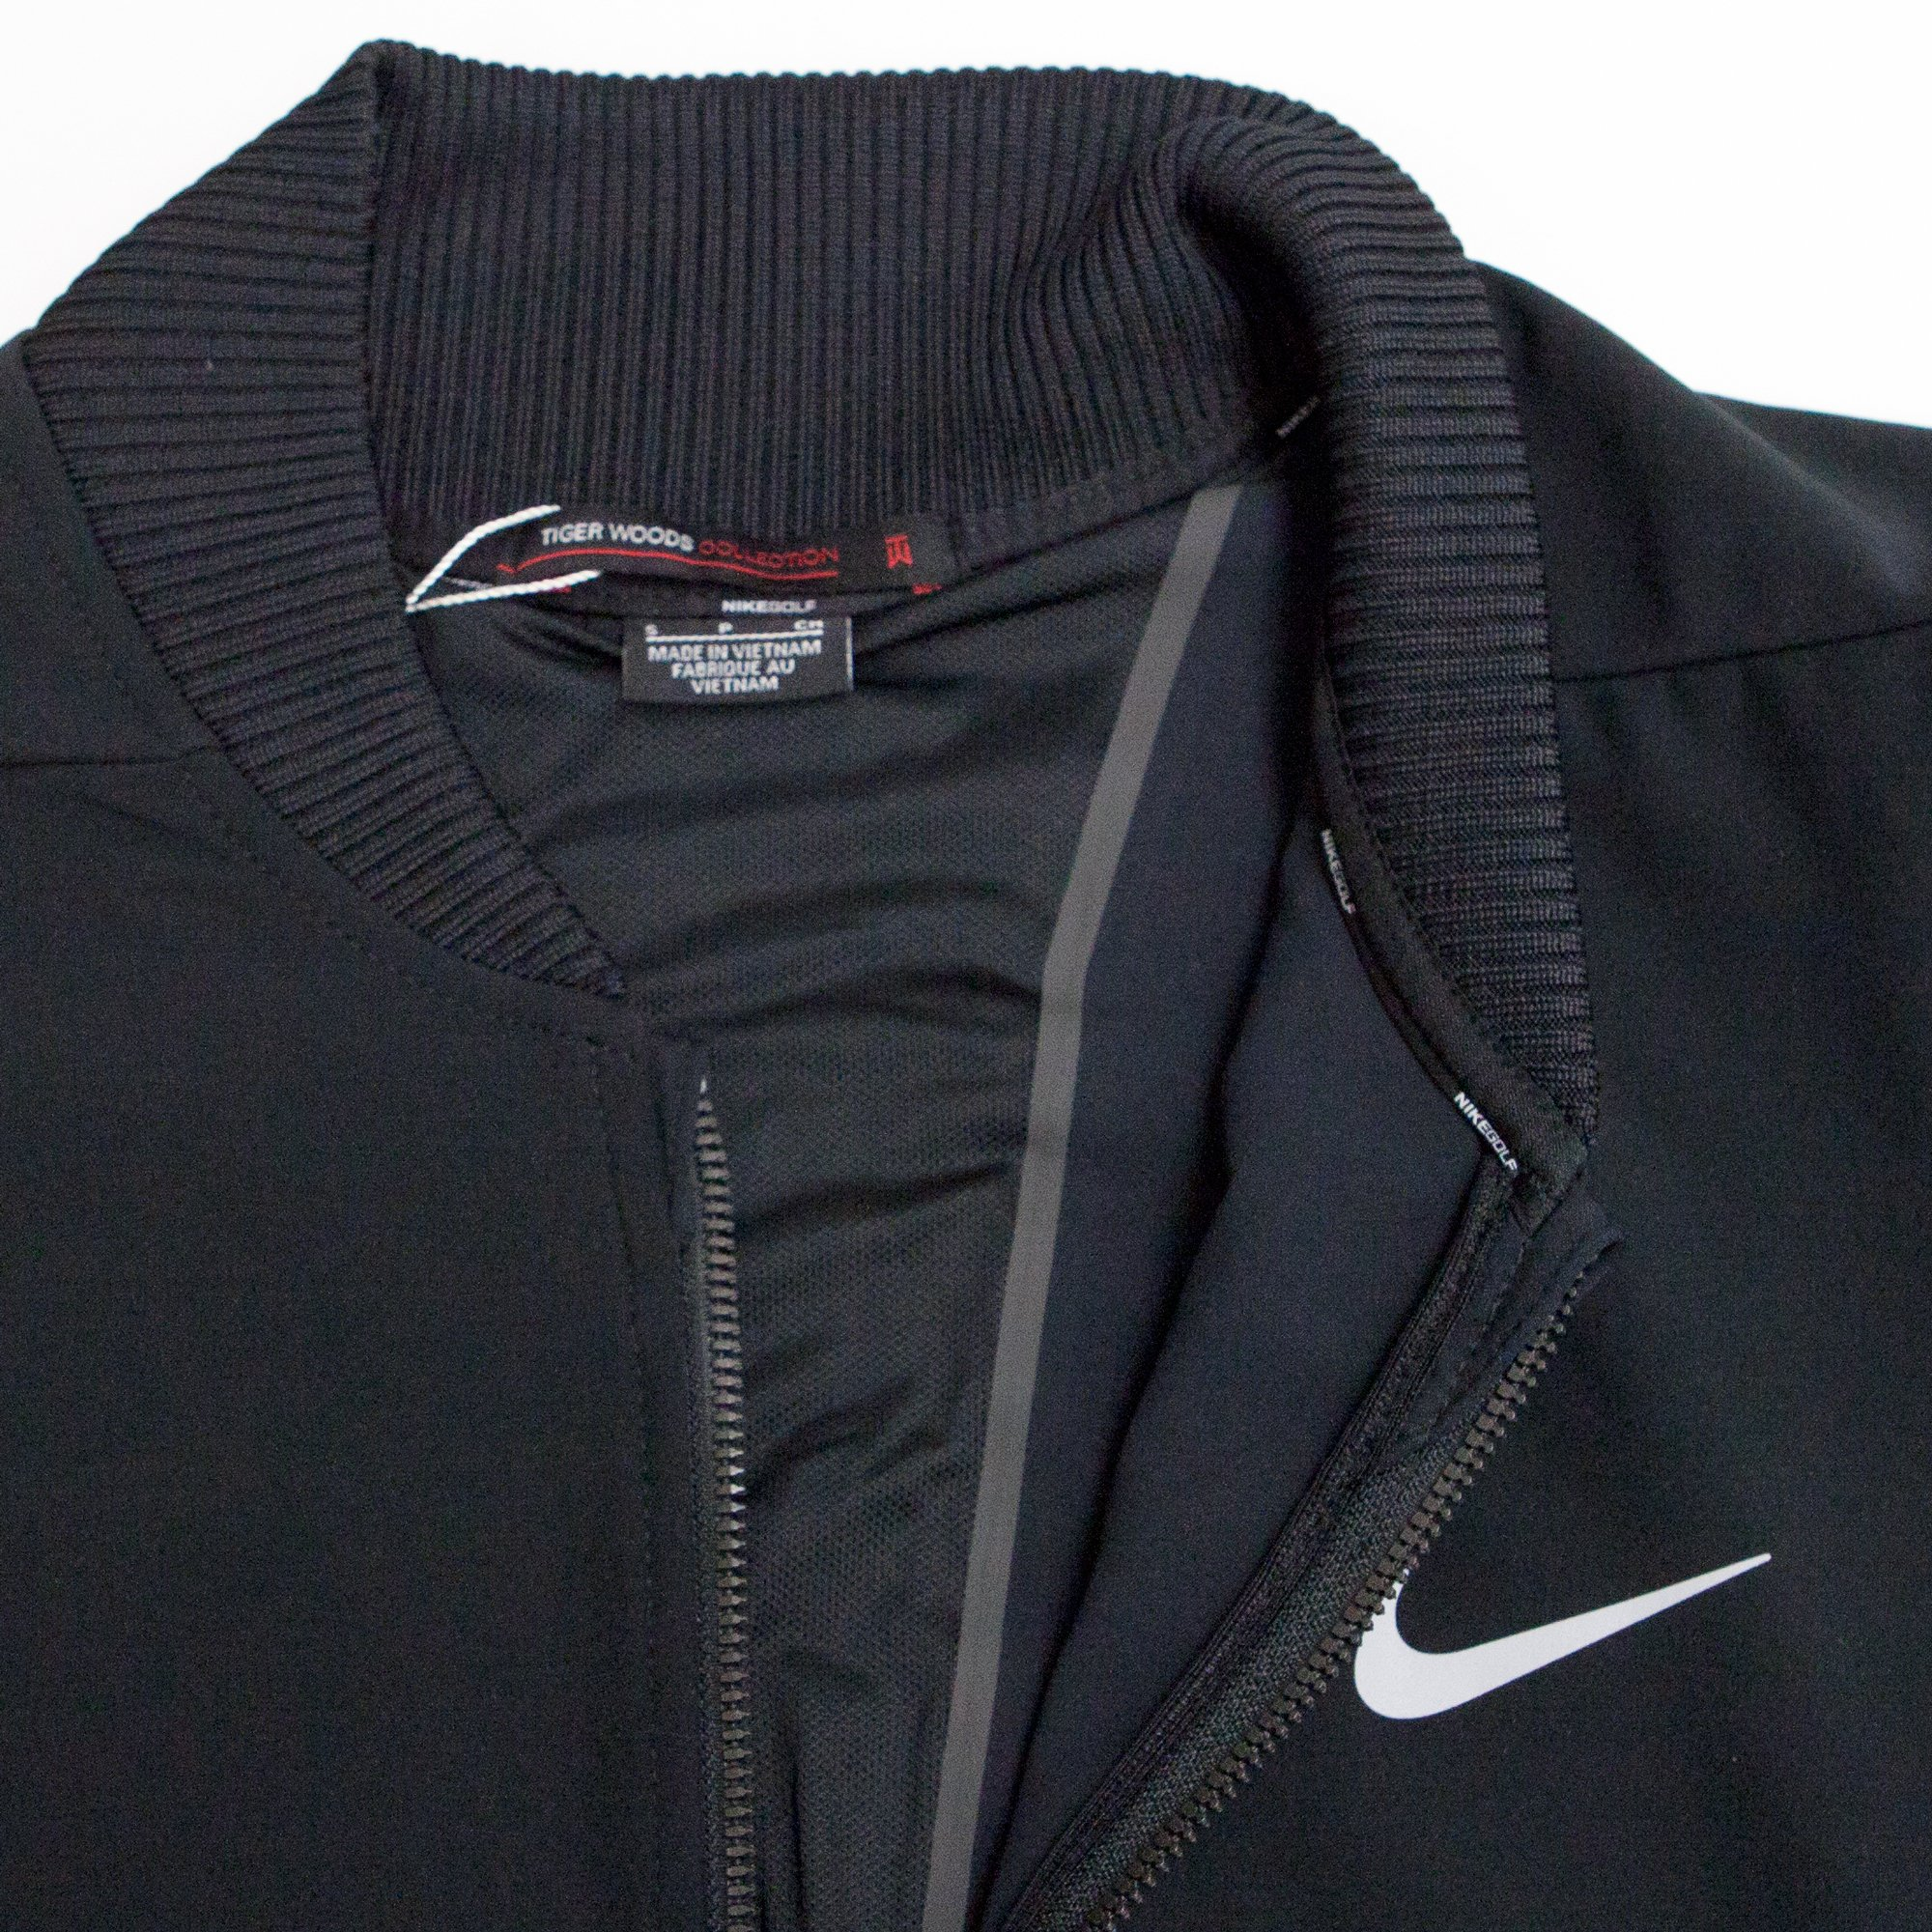 Nike TW (Tiger Woods Collection) Hyperadapt Men's Golf Bomber Jacket (Small, Black/Flat Silver) by Nike (Image #3)